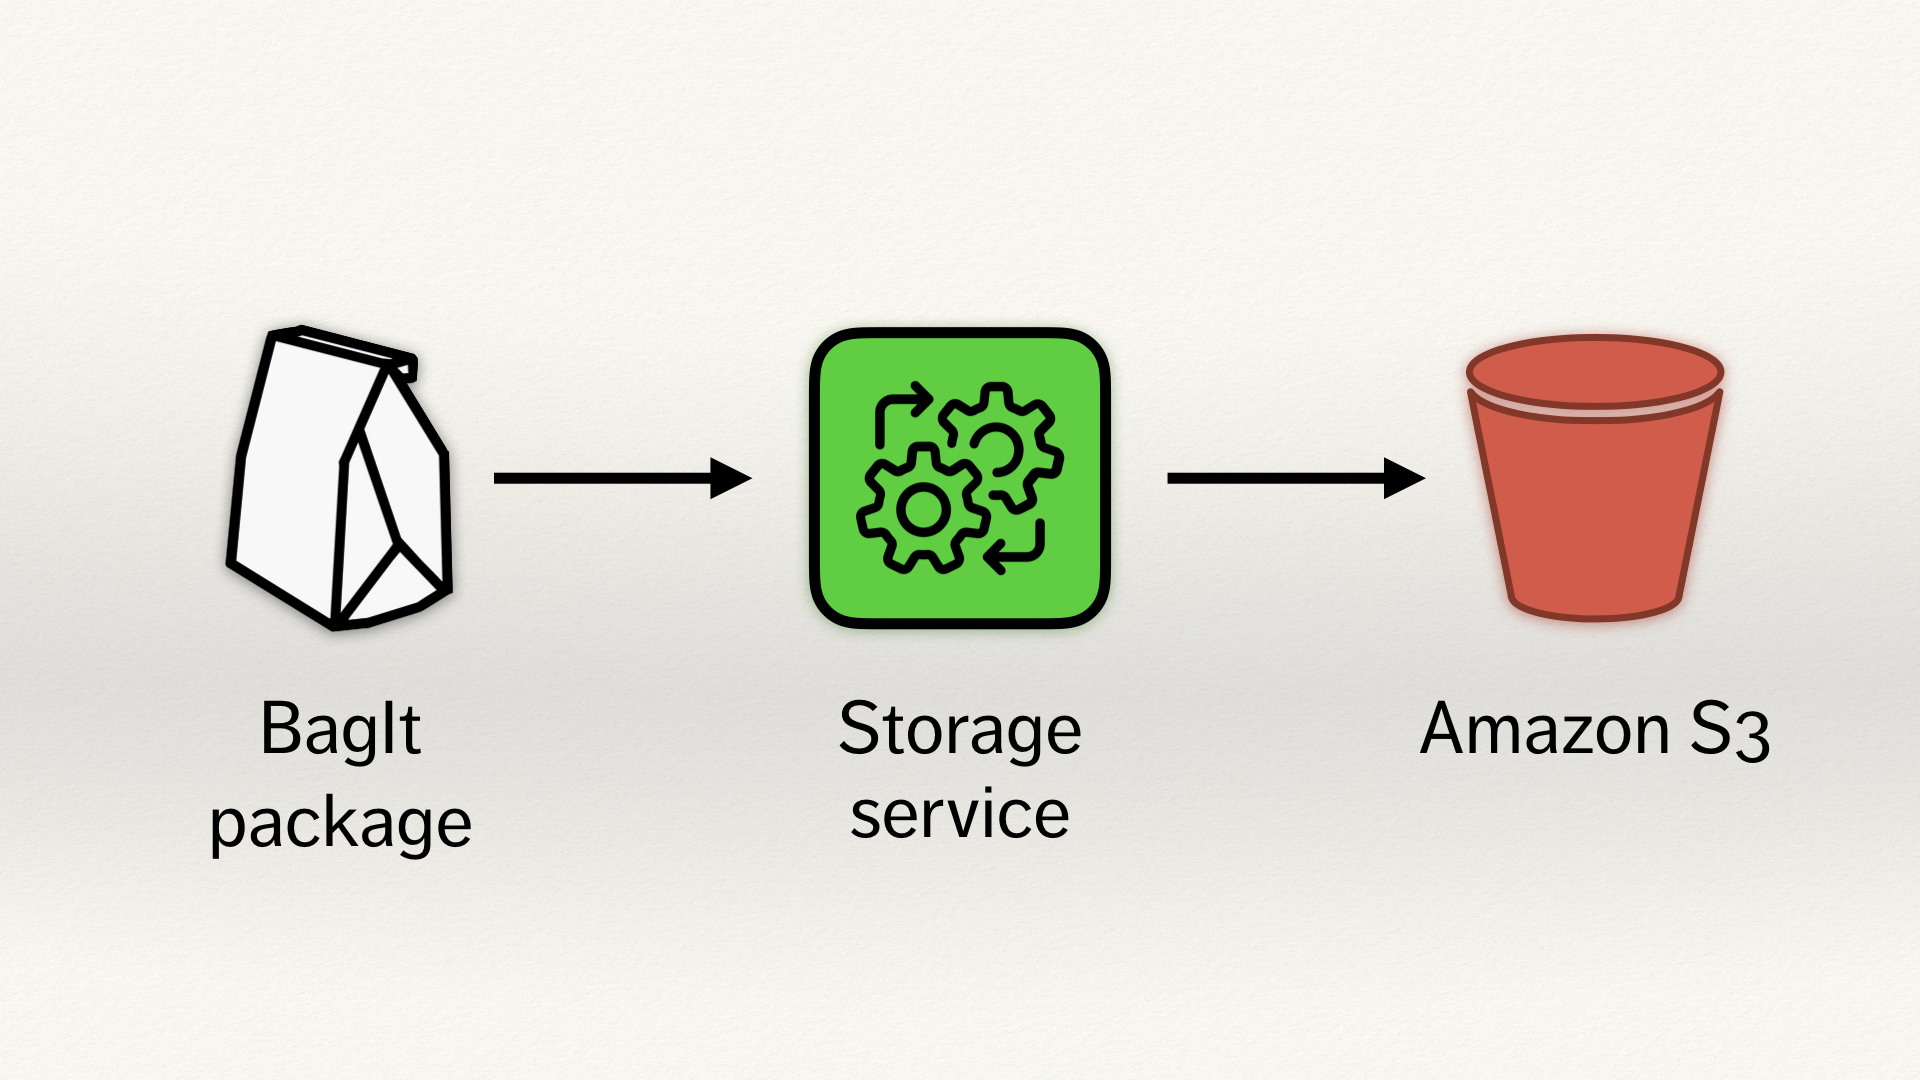 A three step process. A BagIt package (a white paper bag), then the storage service (a green rect with some black gears), and then Amazon S3 (a red bucket). There are arrows from the BagIt package to the storage service, and from the storage service to S3.